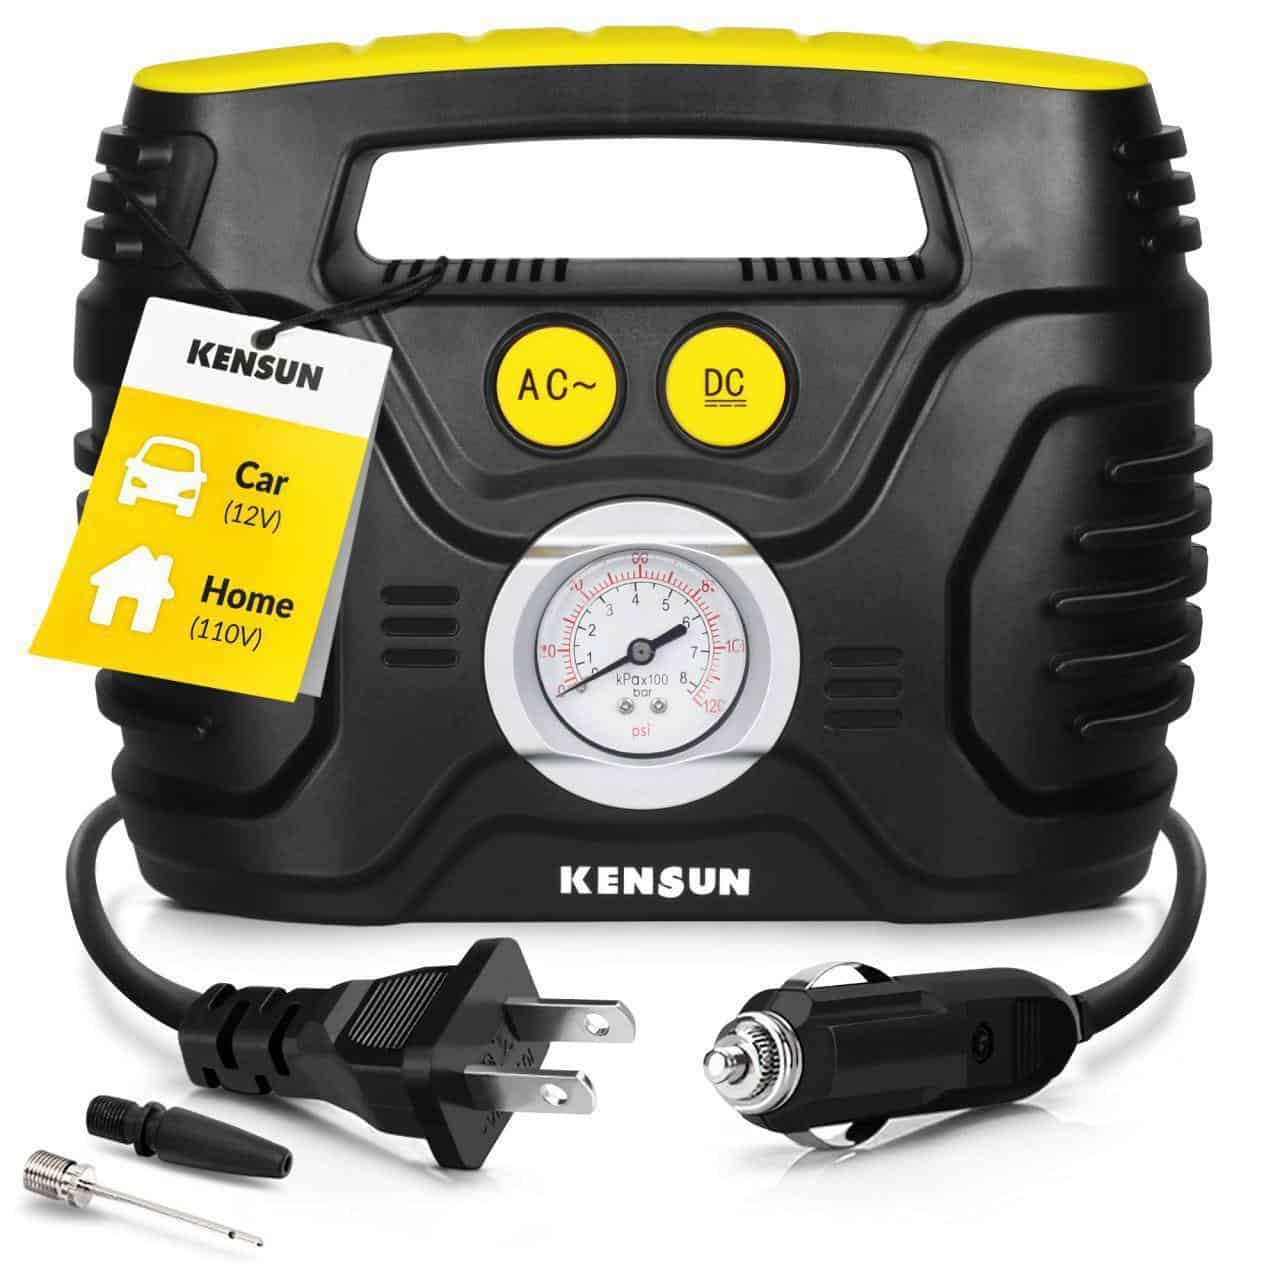 superflow 12v hd air compressor, Kensun Air Compressor – Best Review Guides 2020